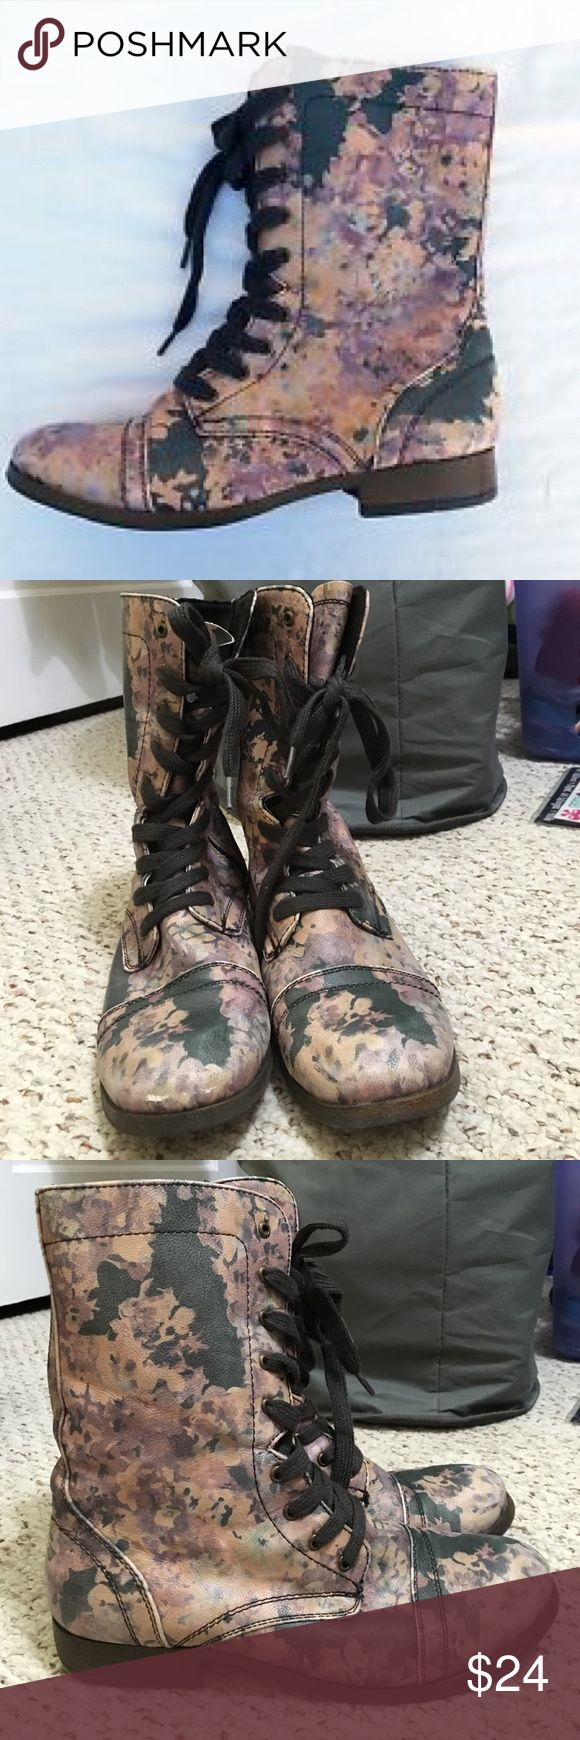 SALE ✨ Floral Combat Boots Super cute muted floral combat boots. Great condition, worn only a few times. Perfect for spring and very unique style! Listed as Steve Madden for exposure, these are from Mossimo Supply Co. Steve Madden Shoes Combat & Moto Boots